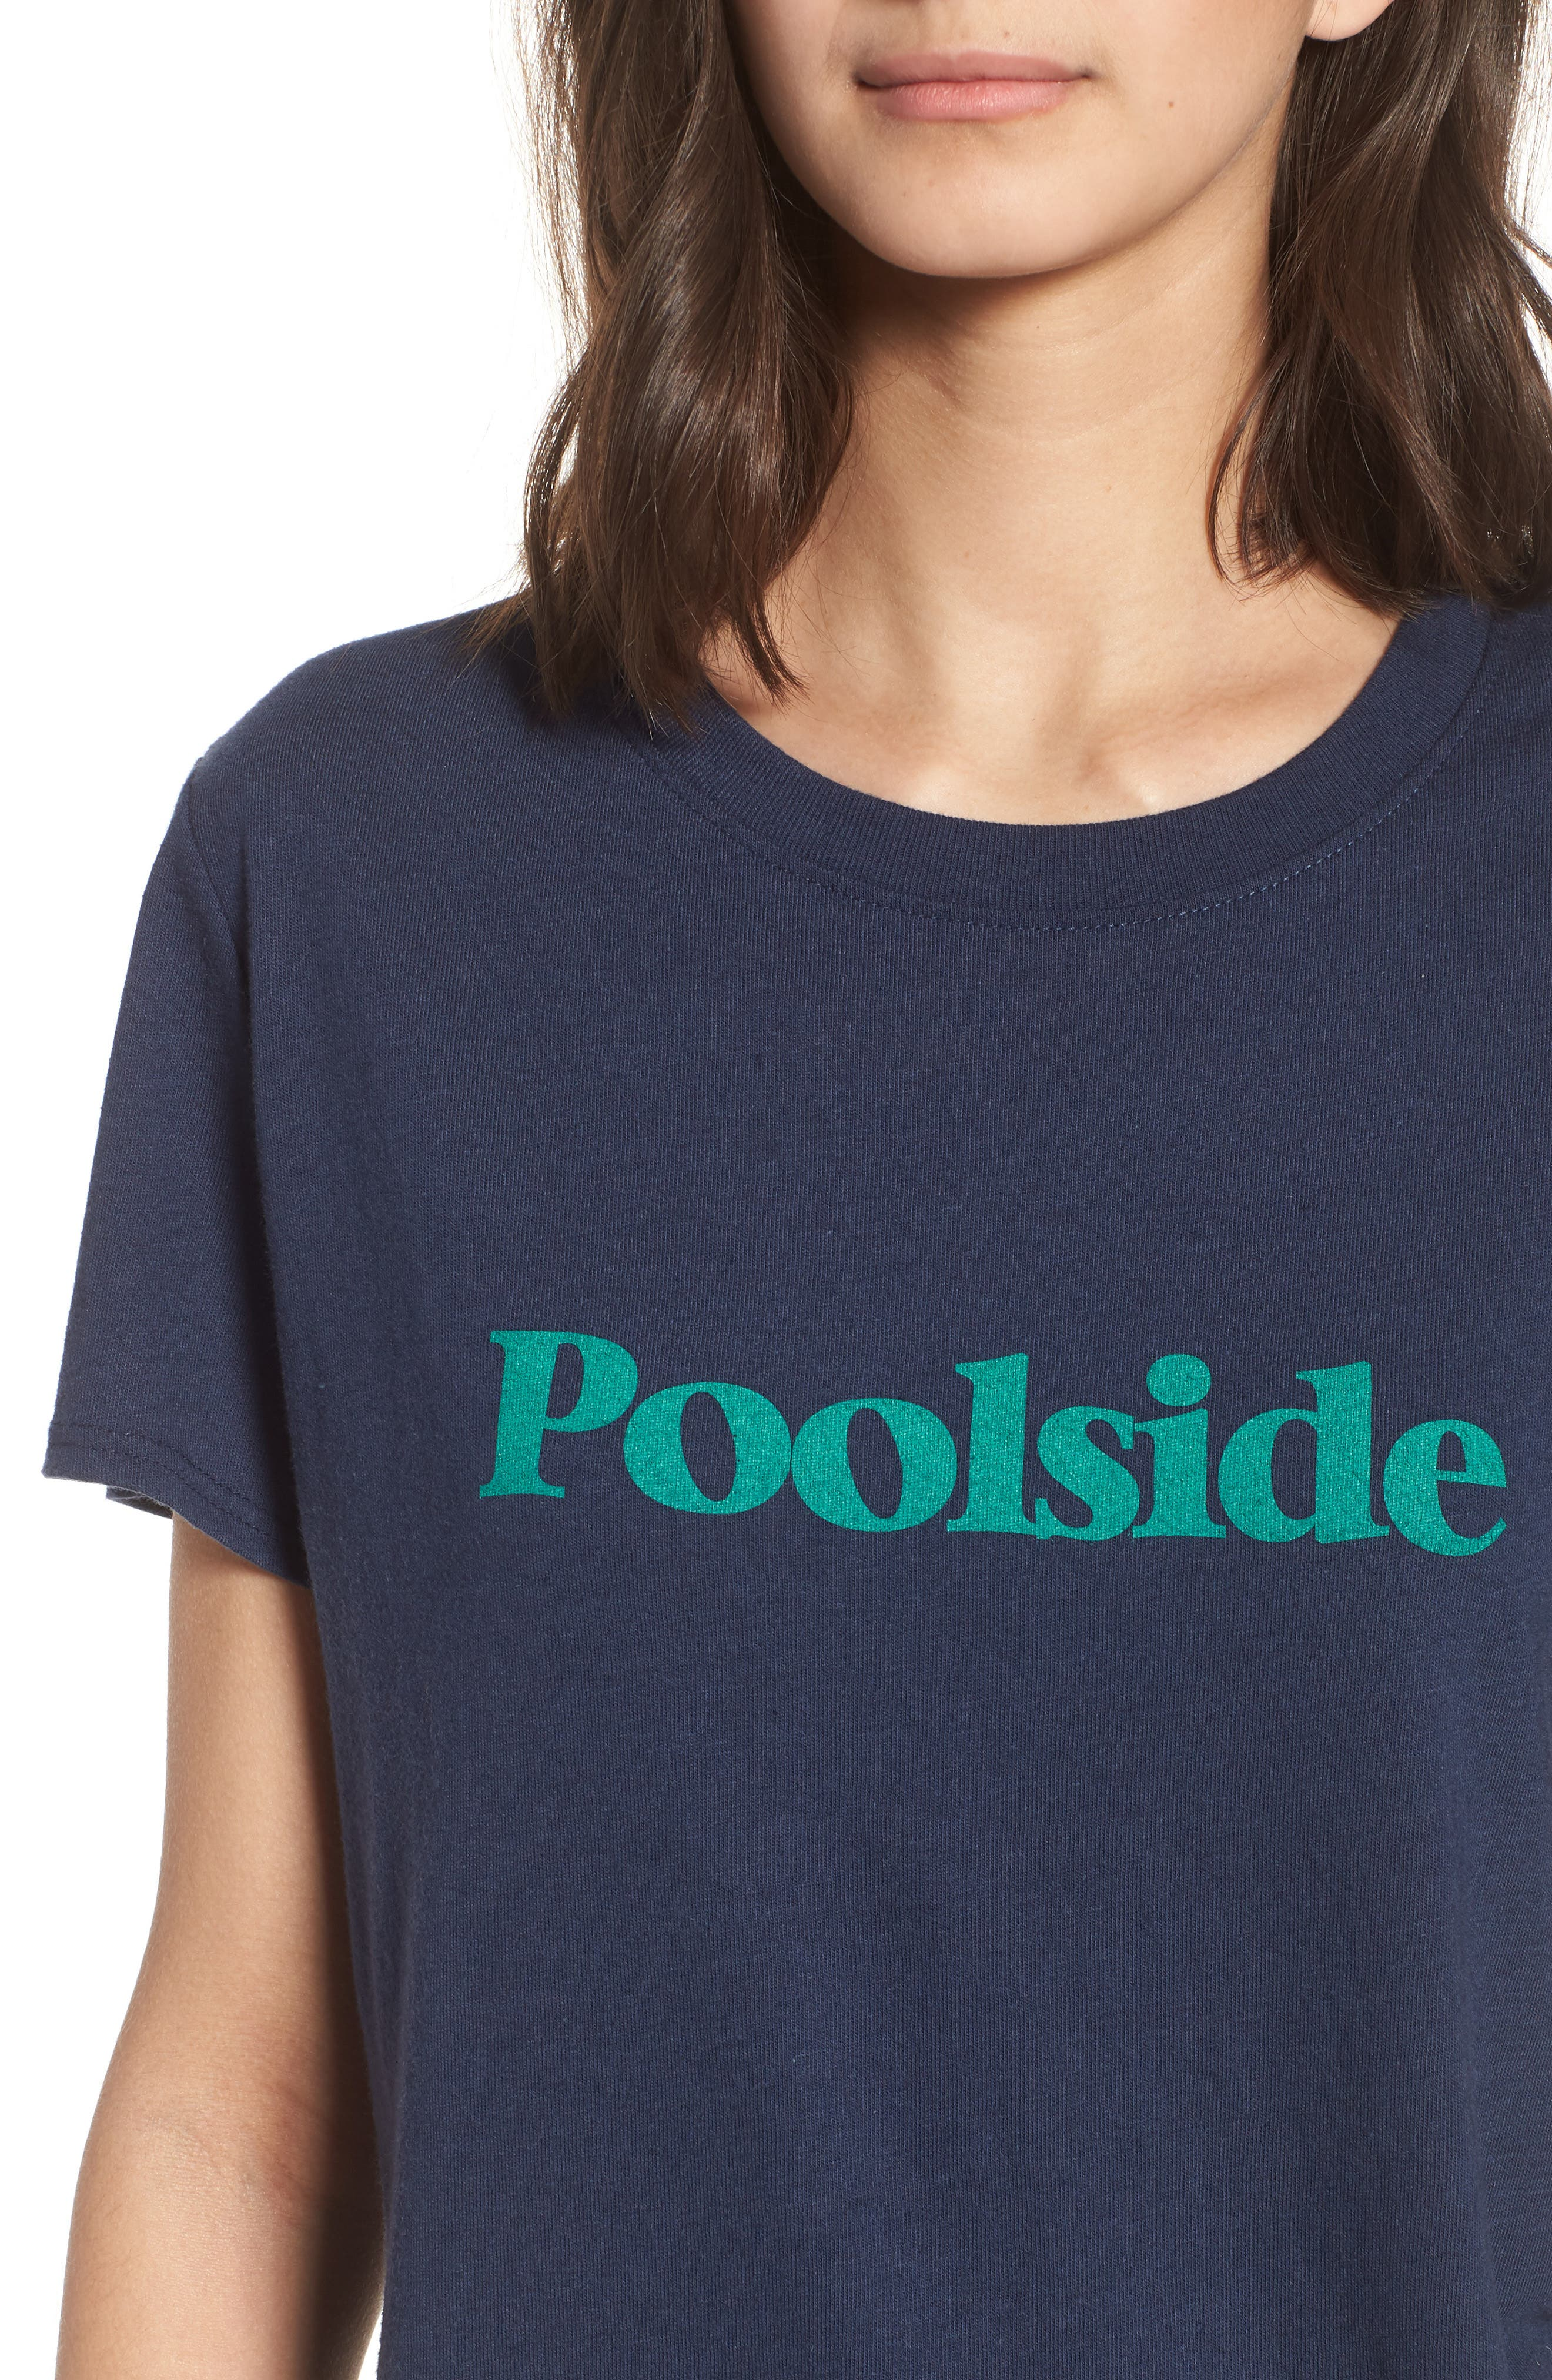 Poolside Graphic Tee,                             Alternate thumbnail 4, color,                             410